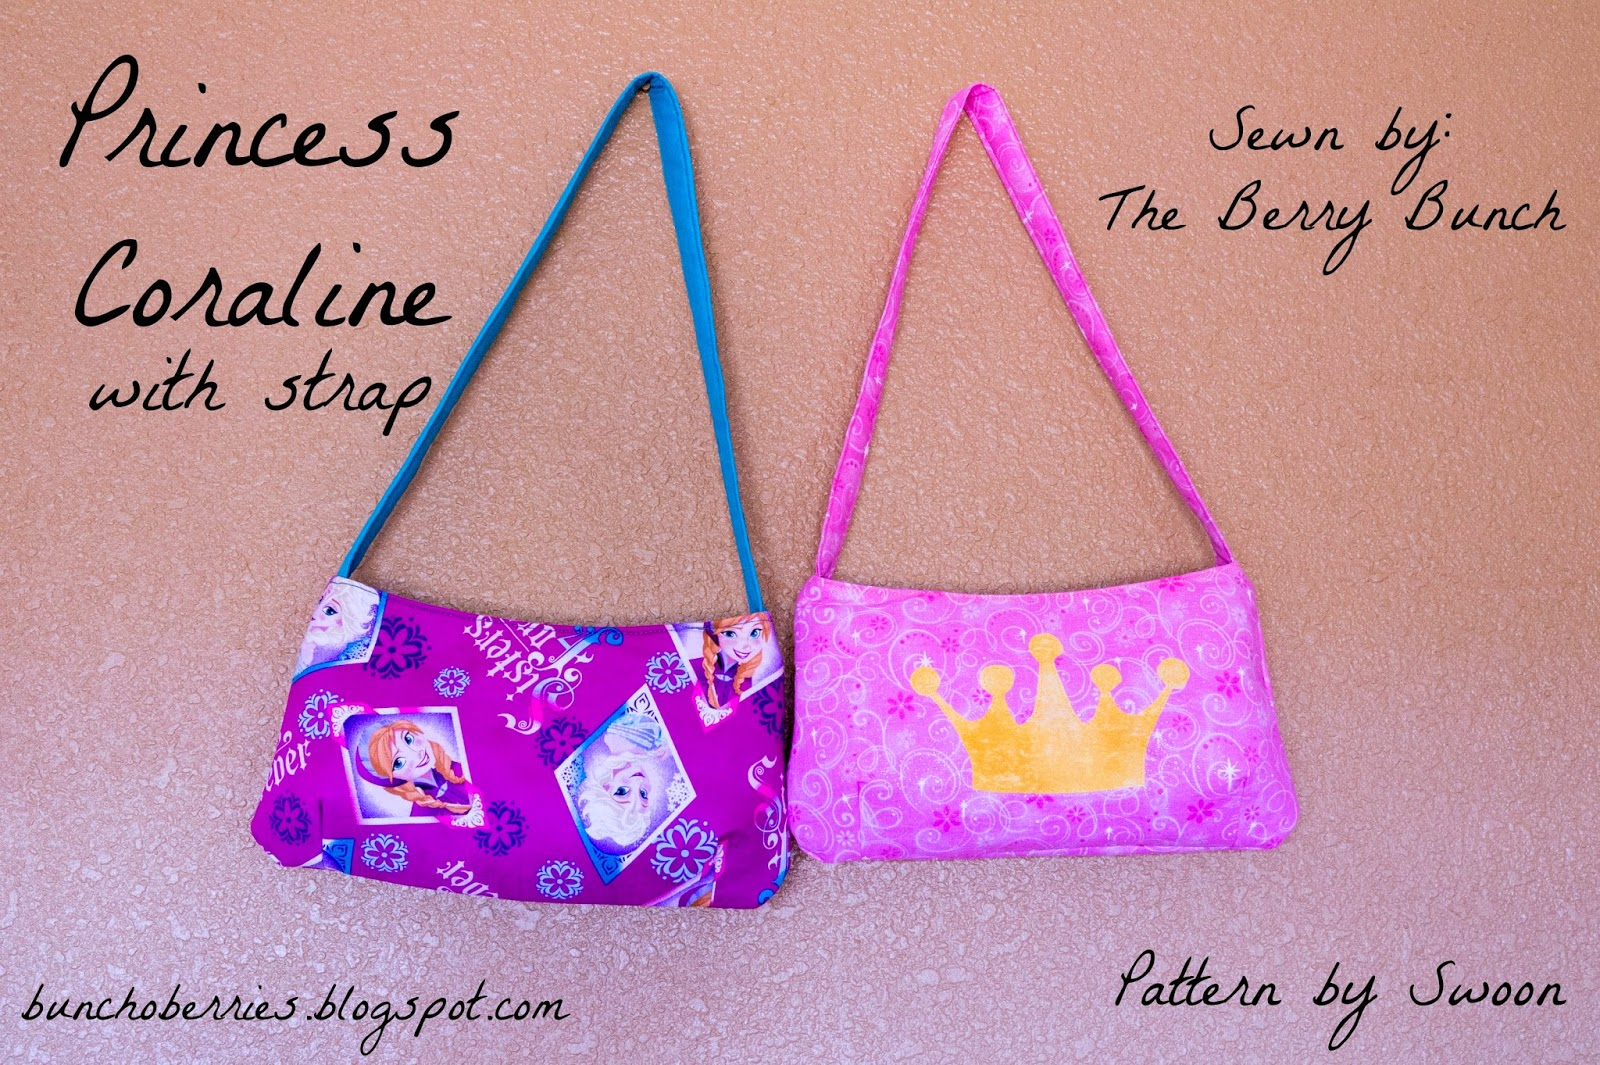 The Berry Bunch: Princess Coraline Clutches with Straps {swoon sewing patterns)